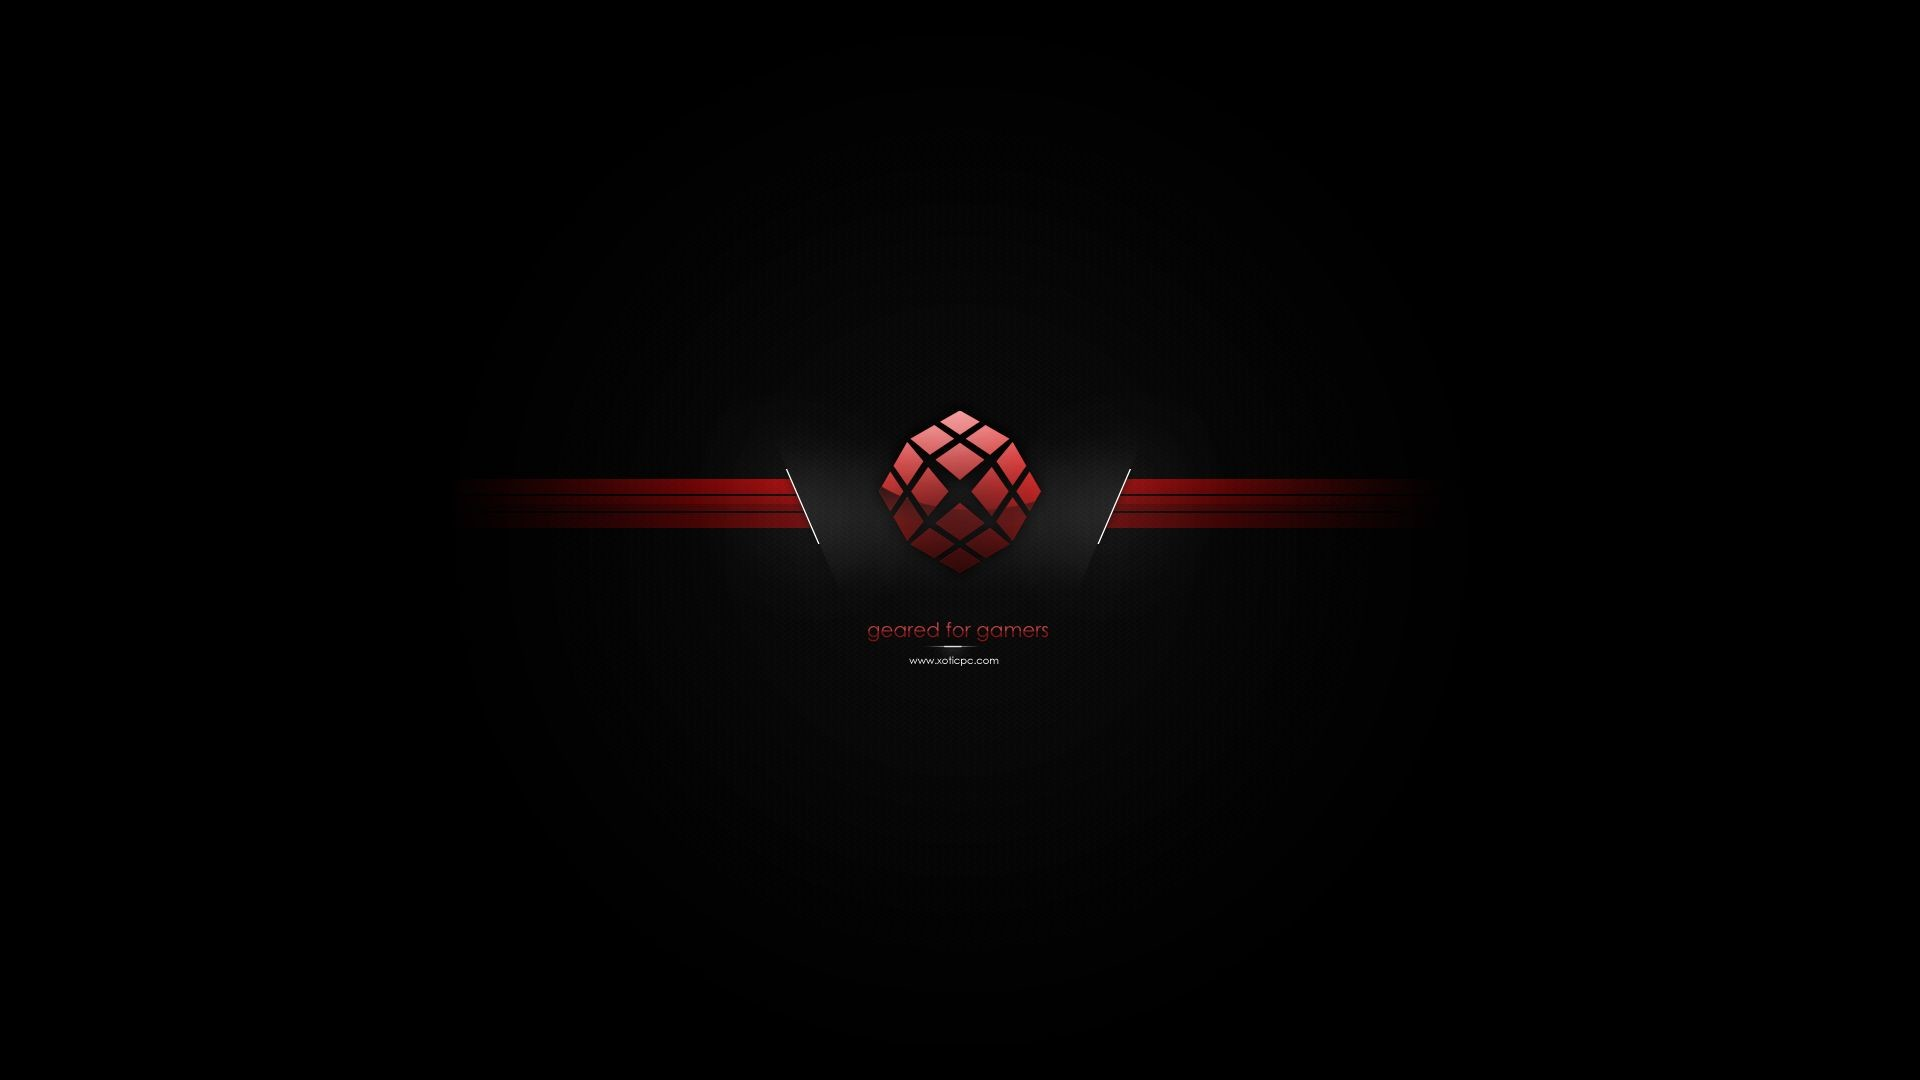 Lenovo wallpaper 1366x768 68 images 1920x1200 wide voltagebd Image collections